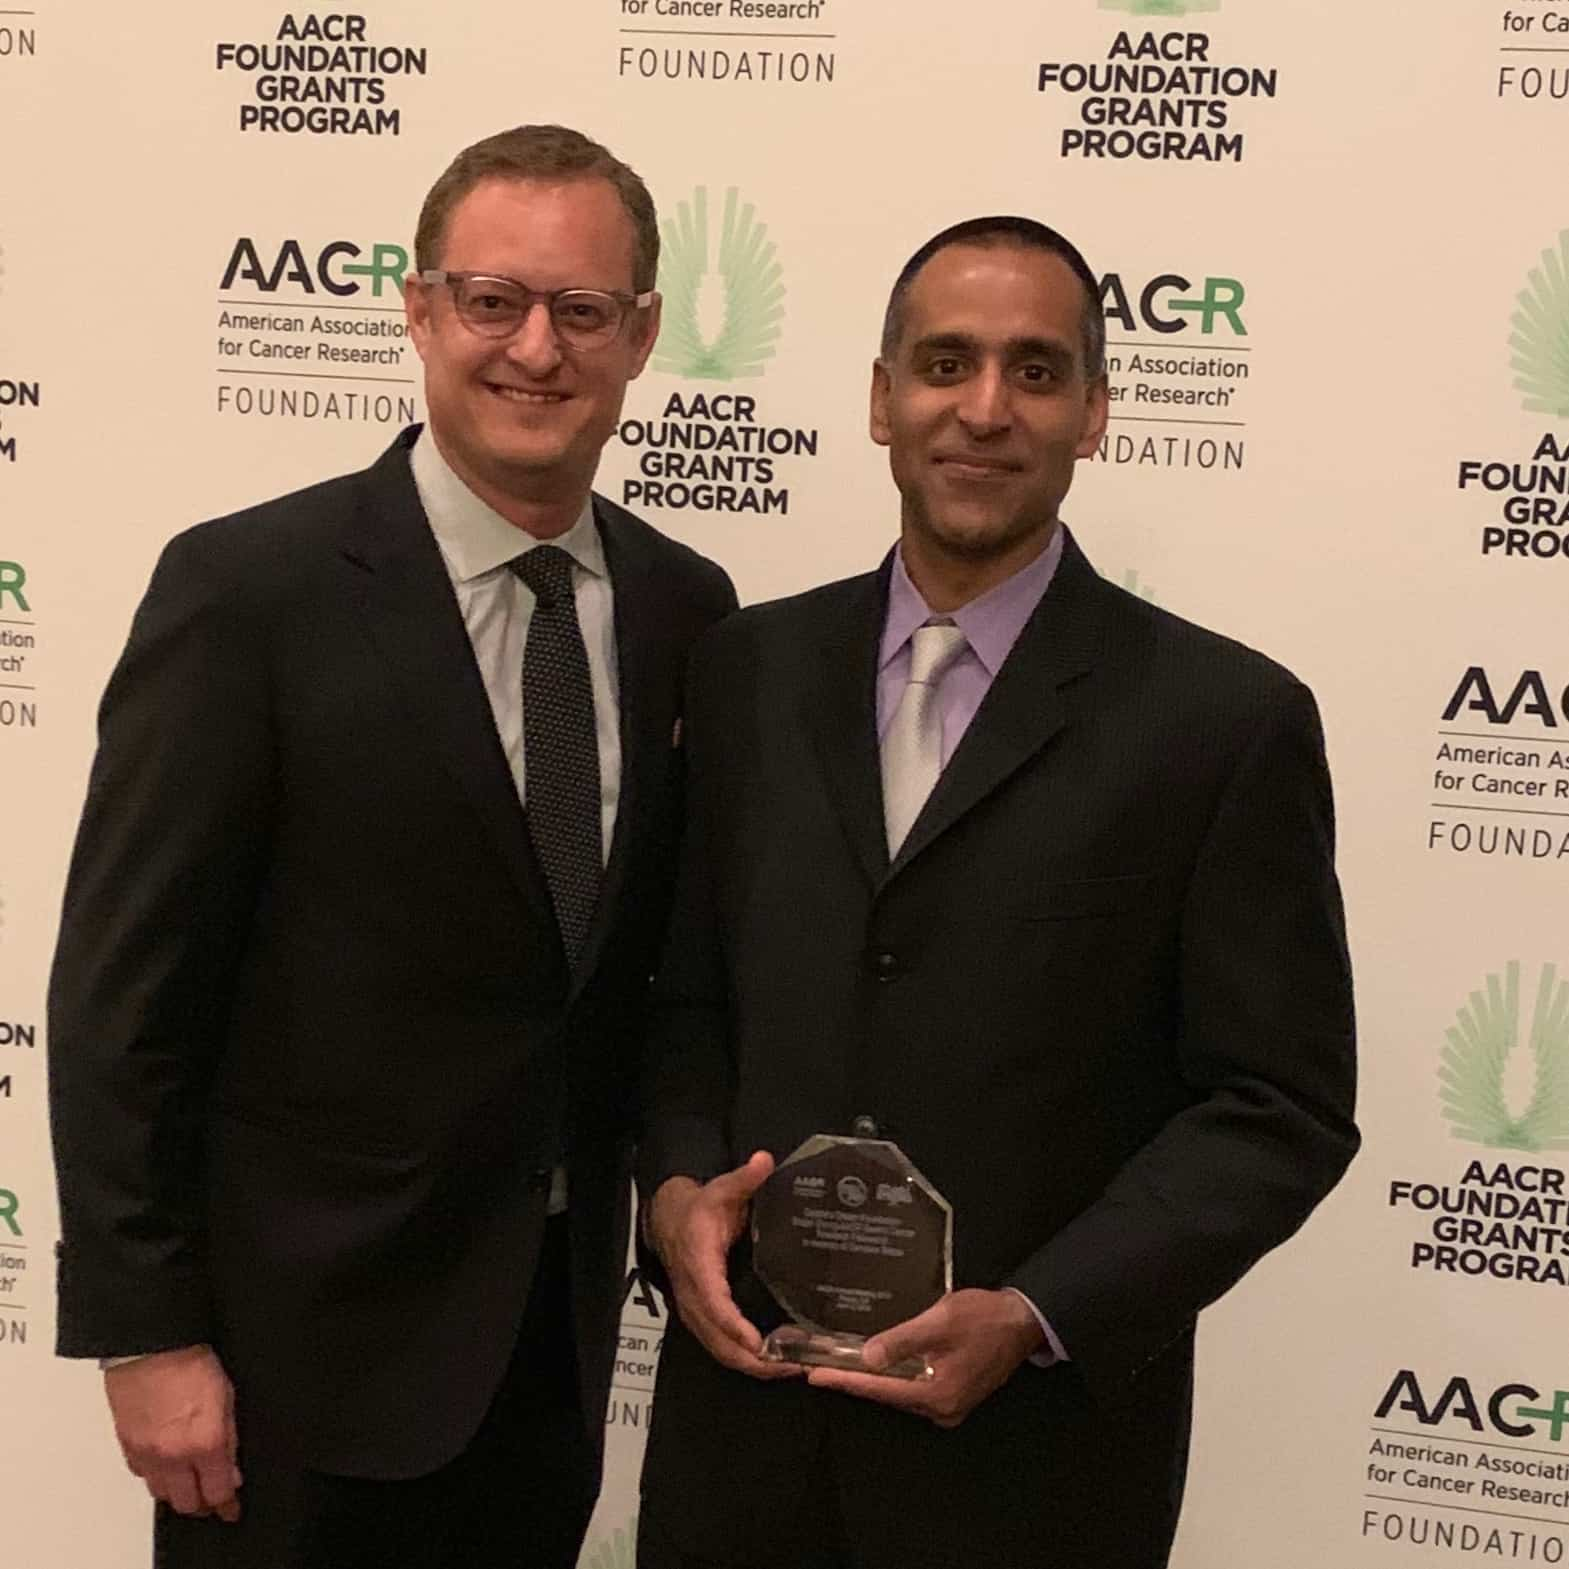 Jeff Netzer and AACR Foundation Grants Program Awardee Dr. Ankur Nagaraja, PhD.